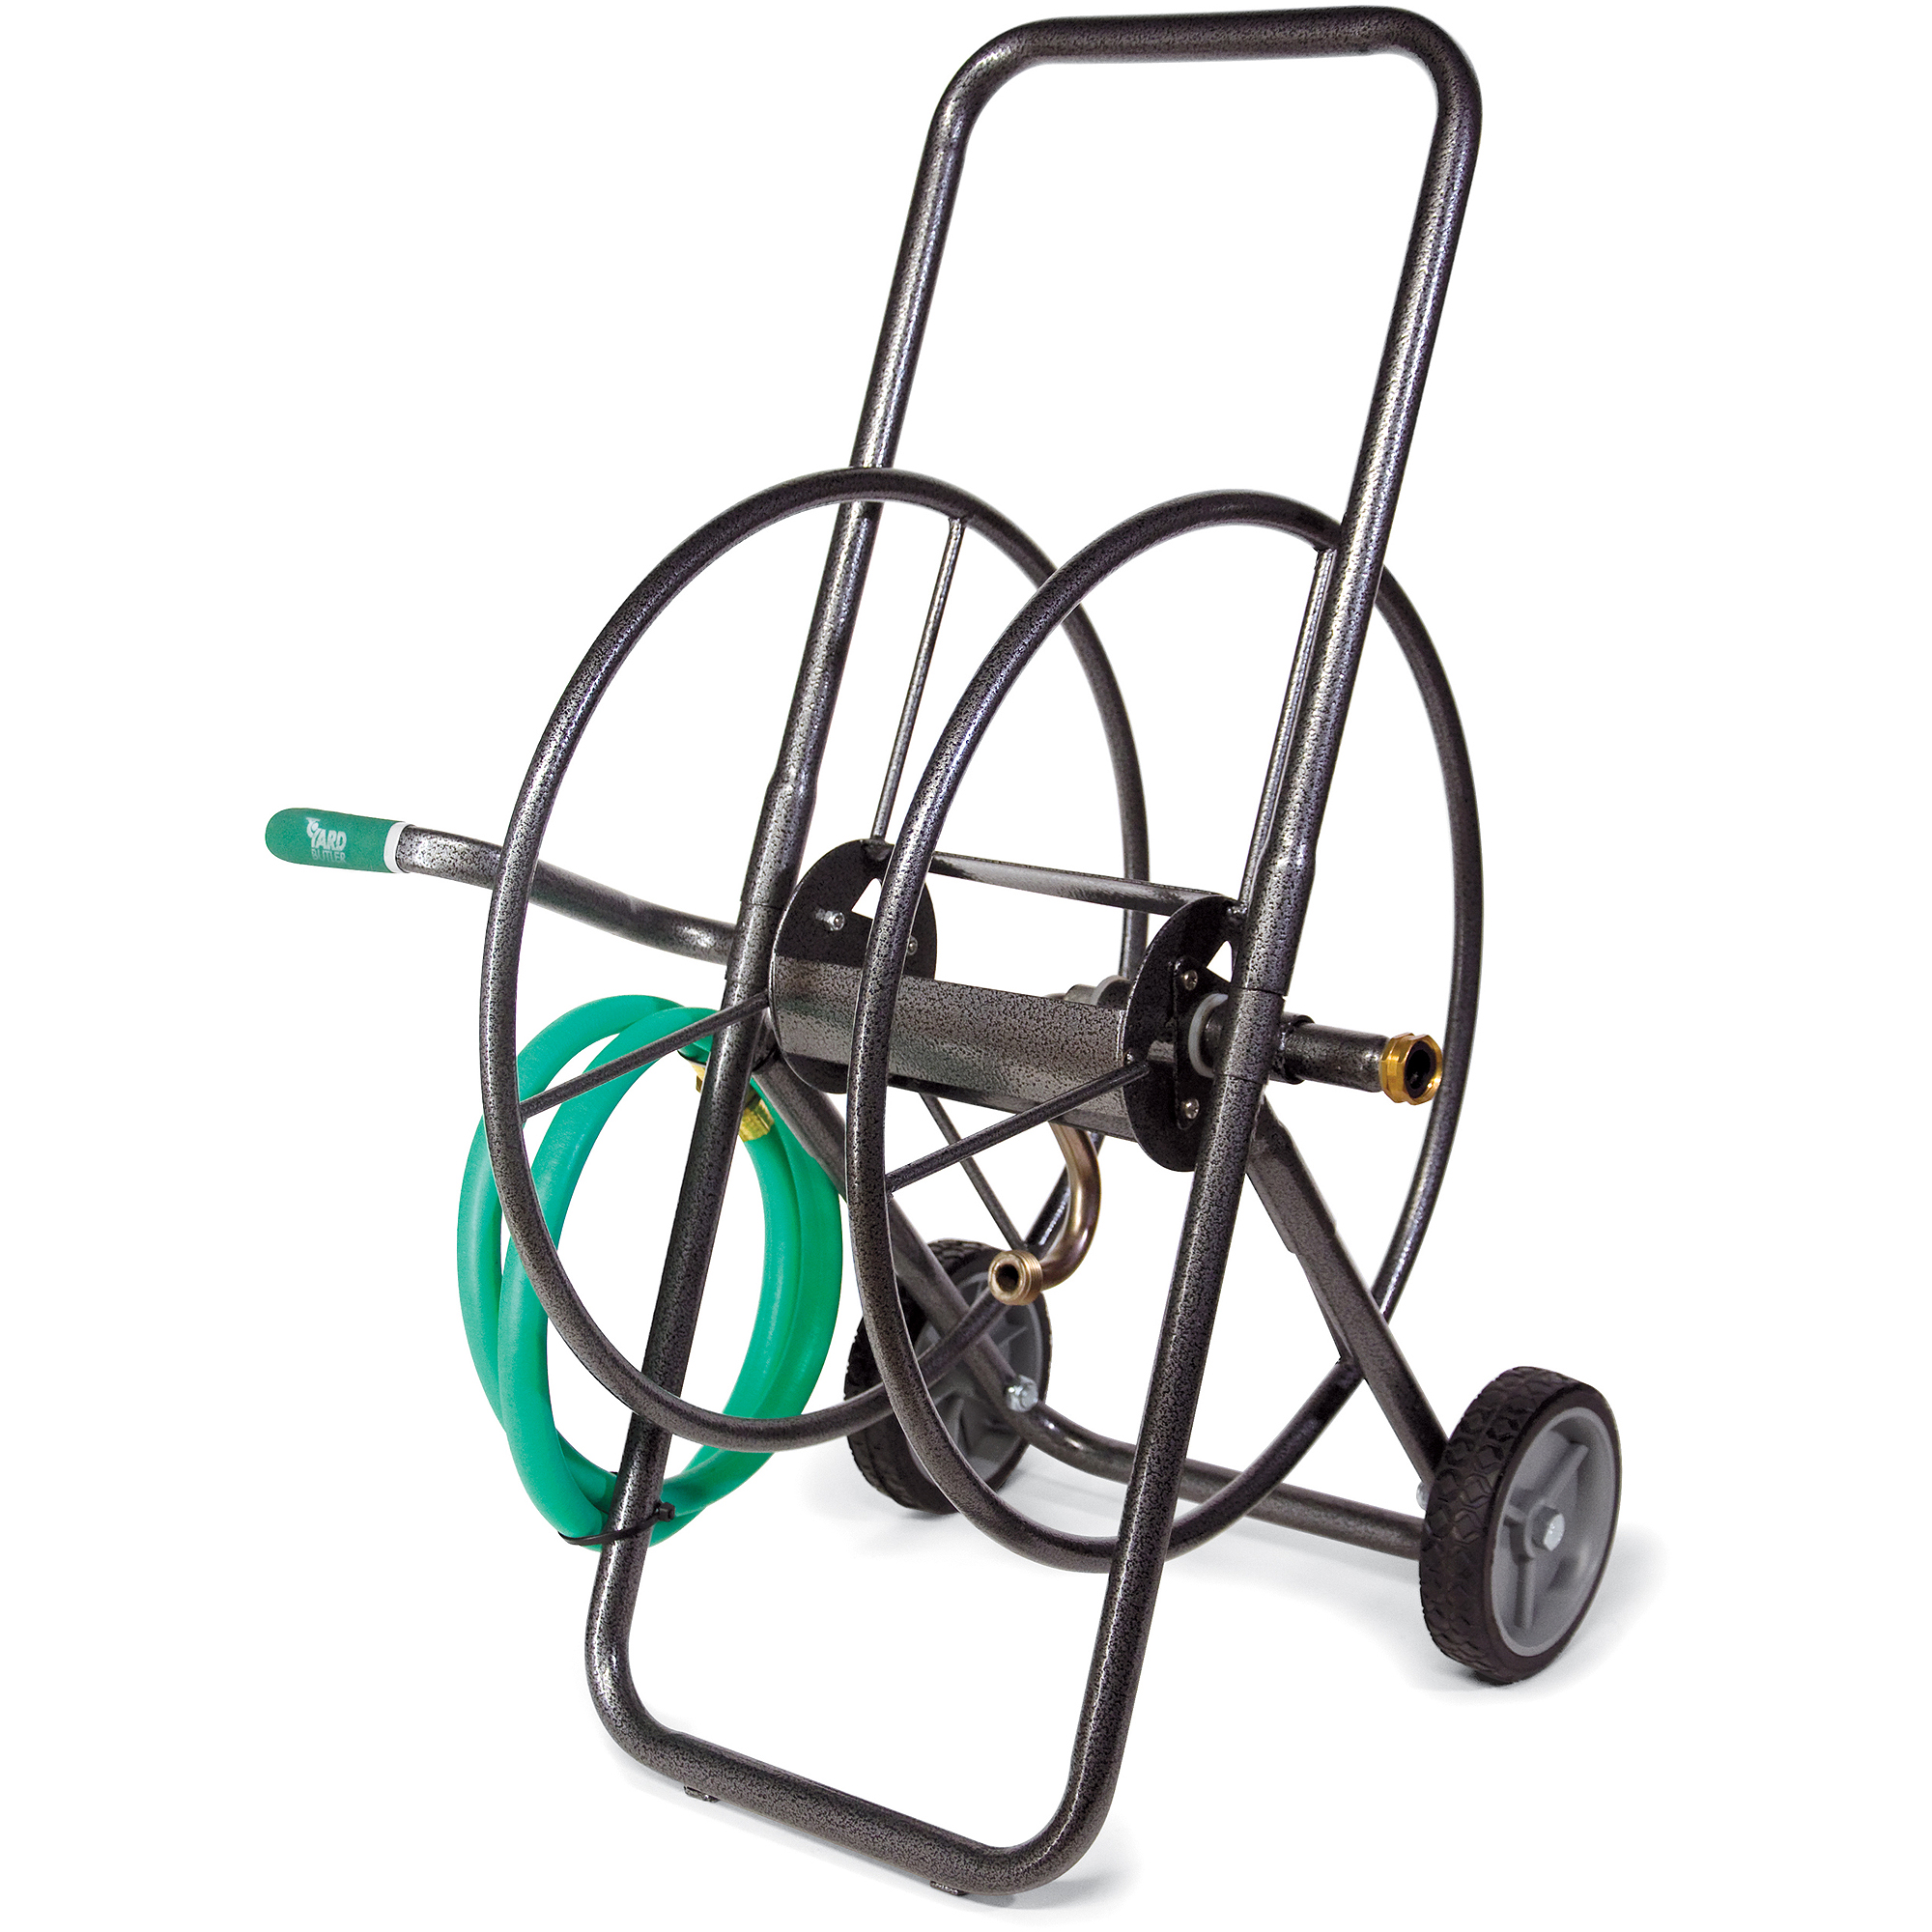 yard butler hose reel yard butler high capacity hose reel cart walmart 1682